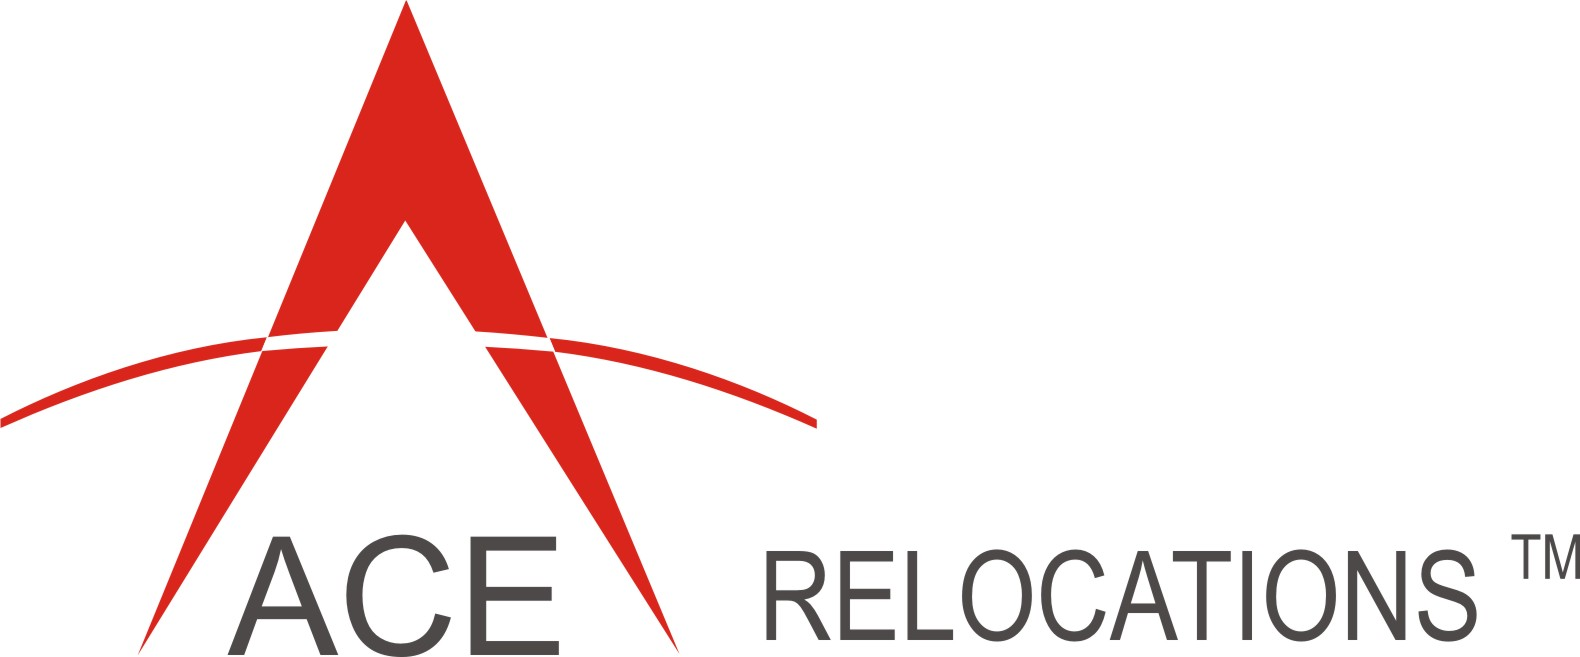 Ace Relocations Call 07930447125 - logo